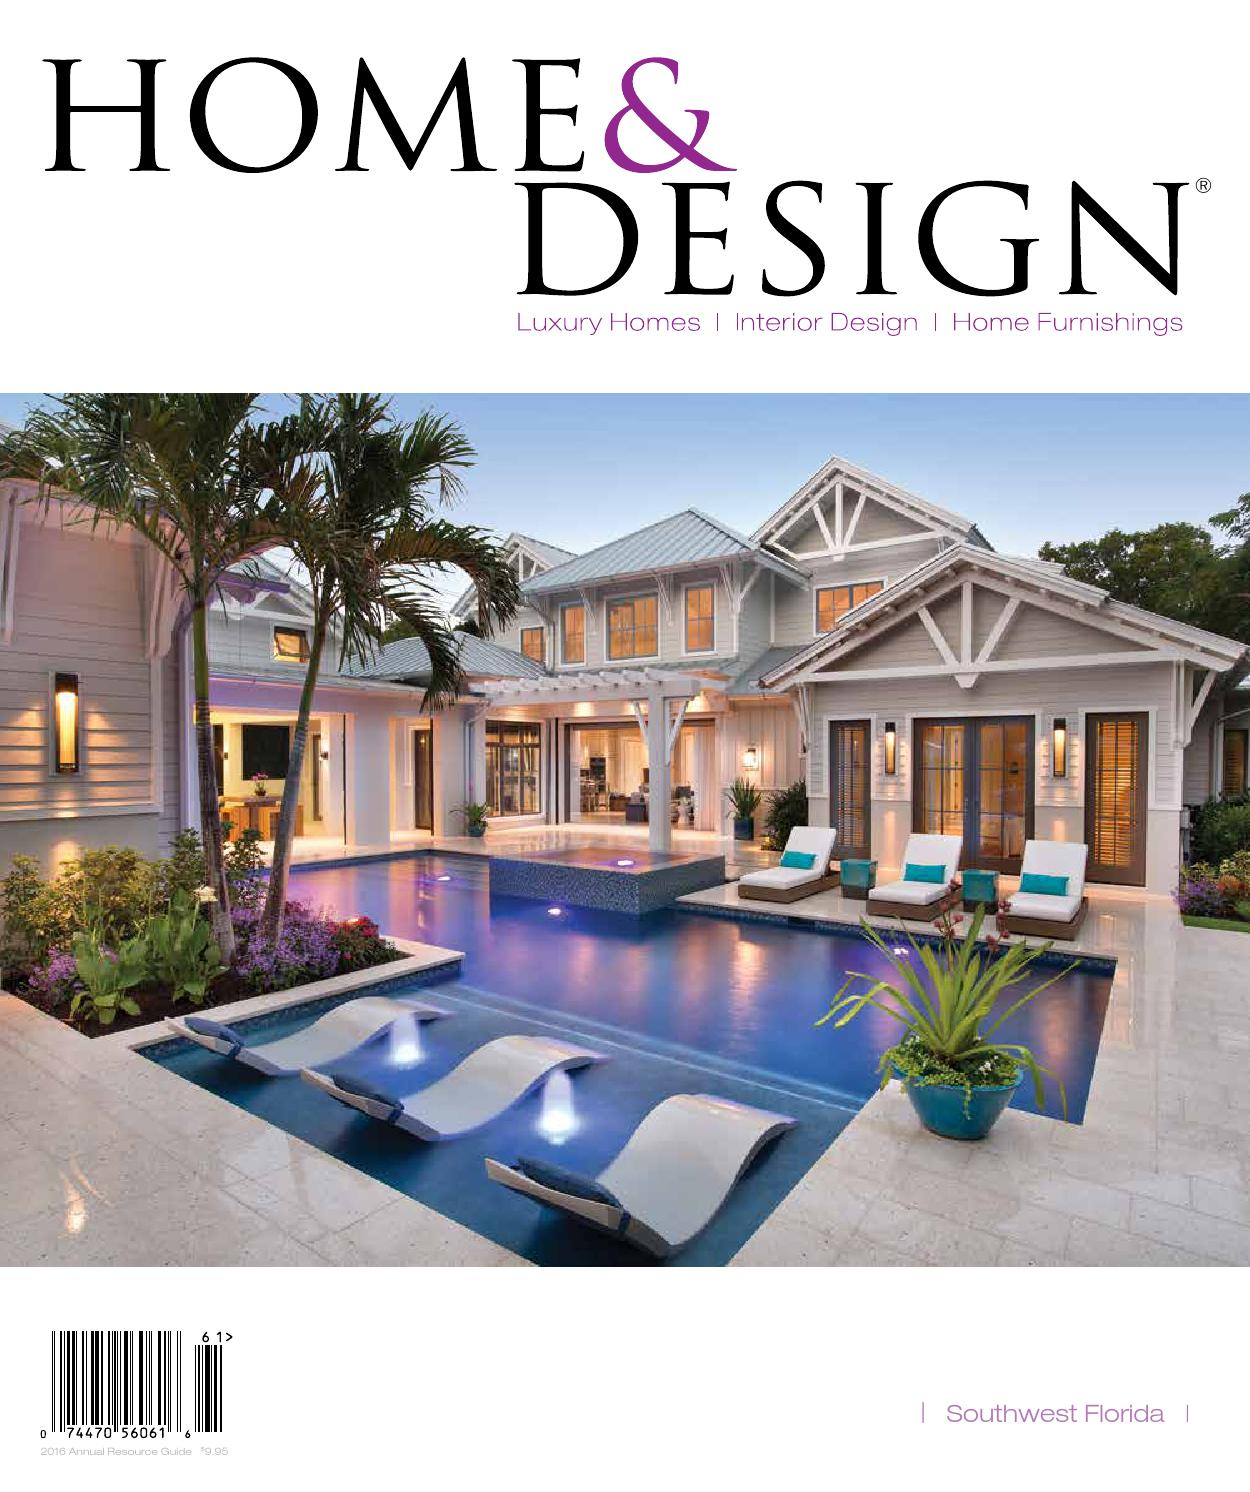 Home design magazine annual resource guide 2016 for Florida house designs